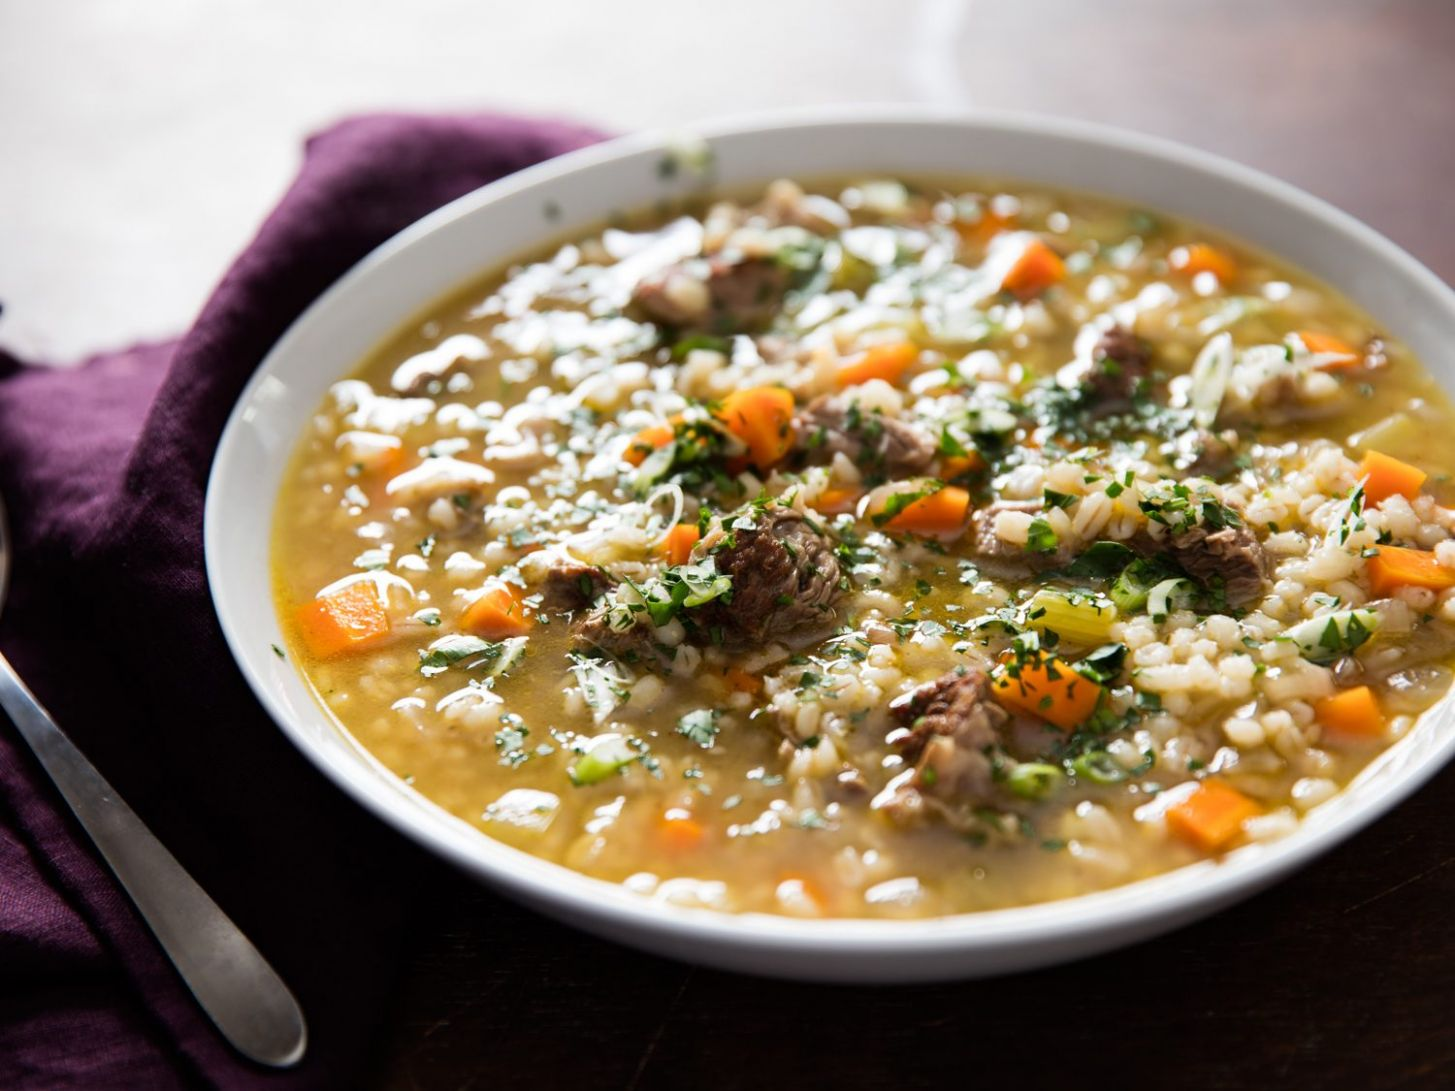 Beef Barley Soup Recipe - Recipes Beef Barley Soup